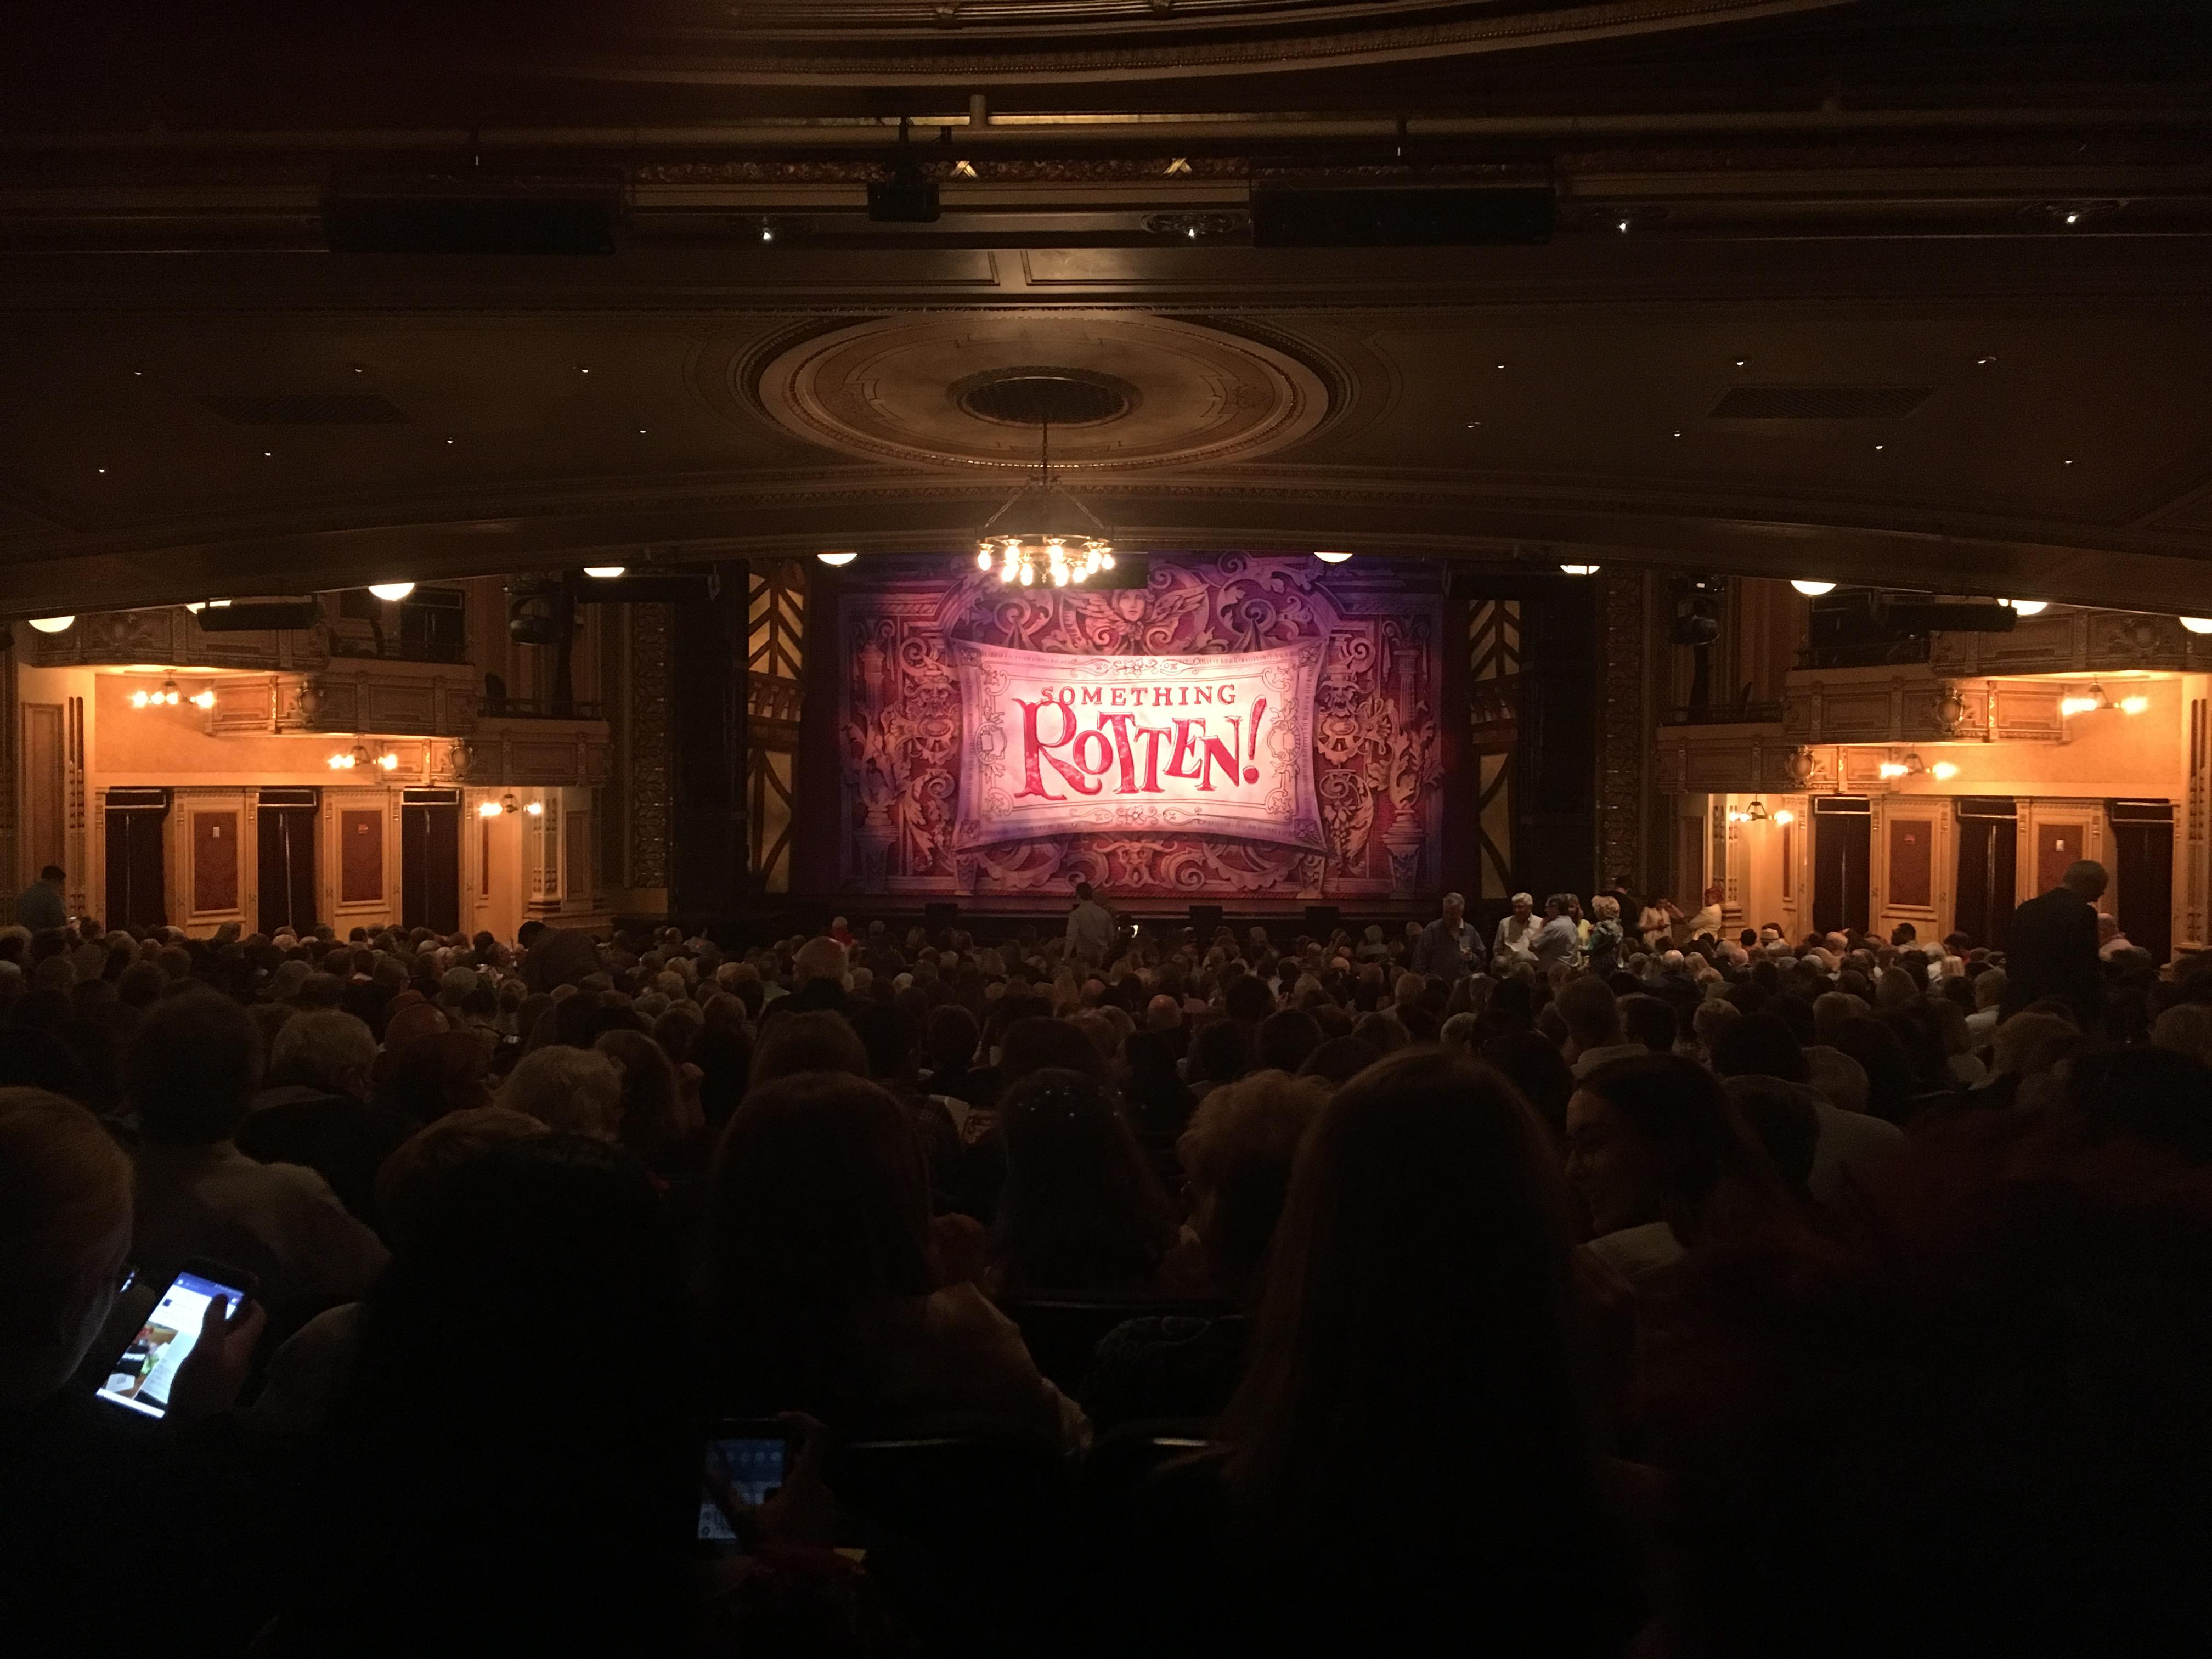 Hippodrome Theatre Section Center Orchestra Row EE Seat 110